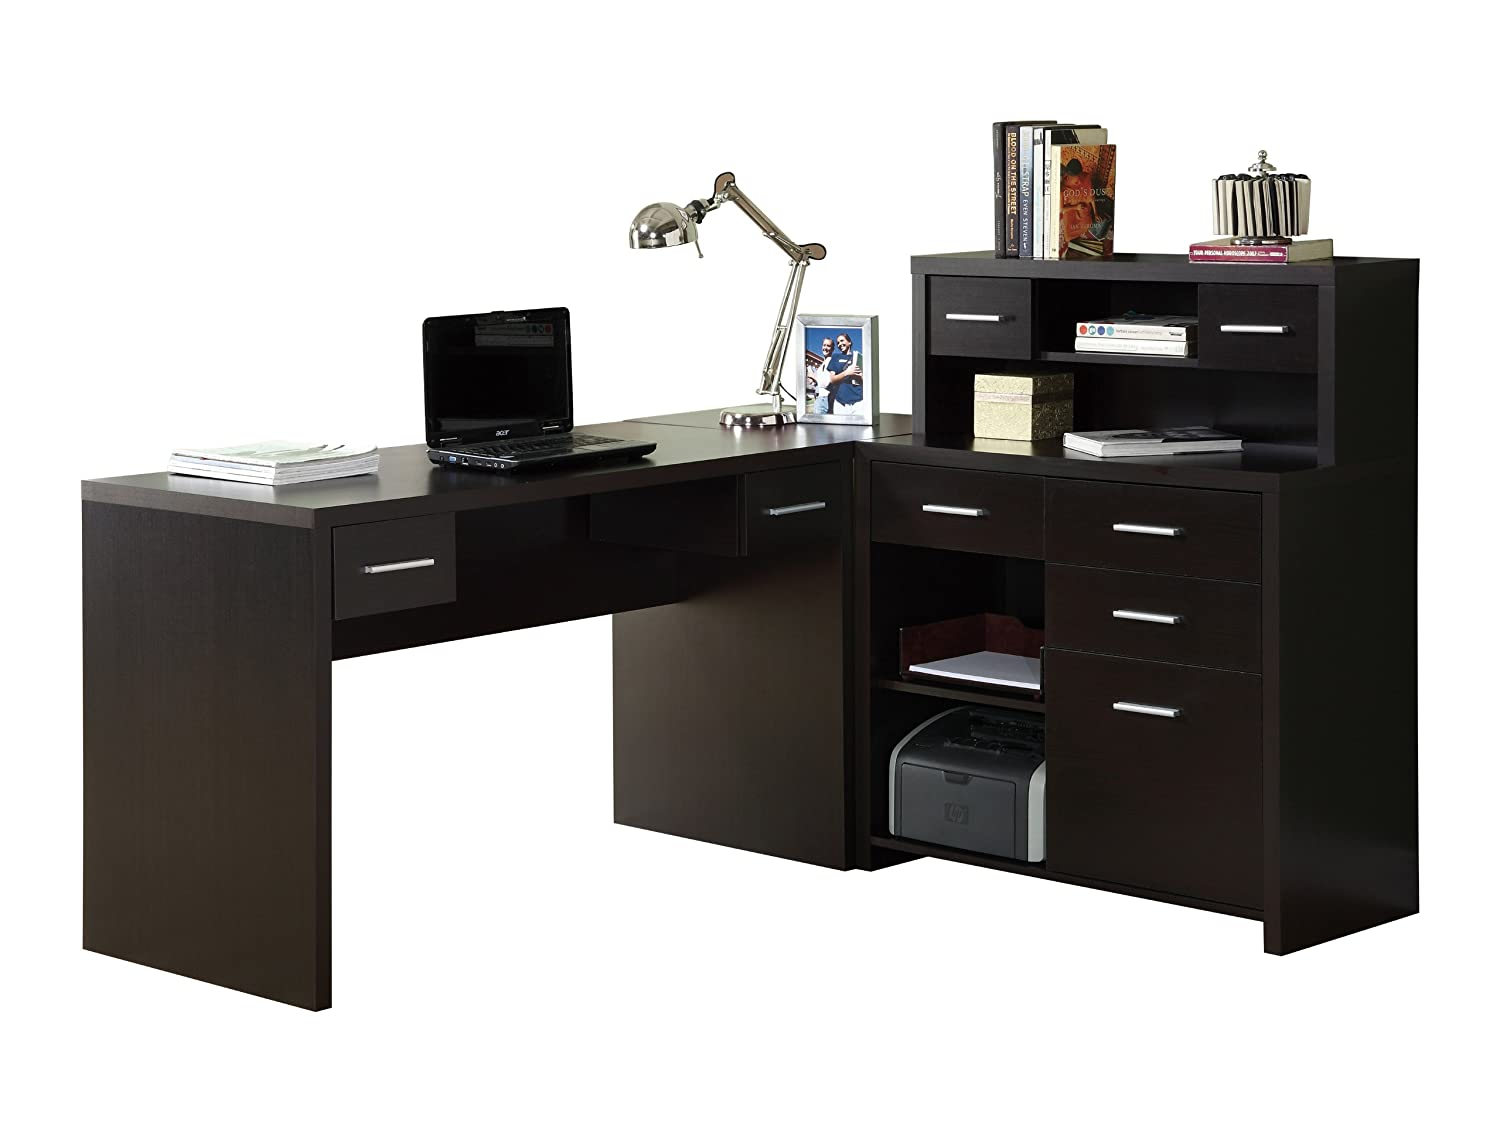 buy home office desks. Amazon.com: Monarch Specialties Hollow-Core L-Shaped Home Office Desk,  Cappuccino: Kitchen \u0026 Dining Buy Home Office Desks O